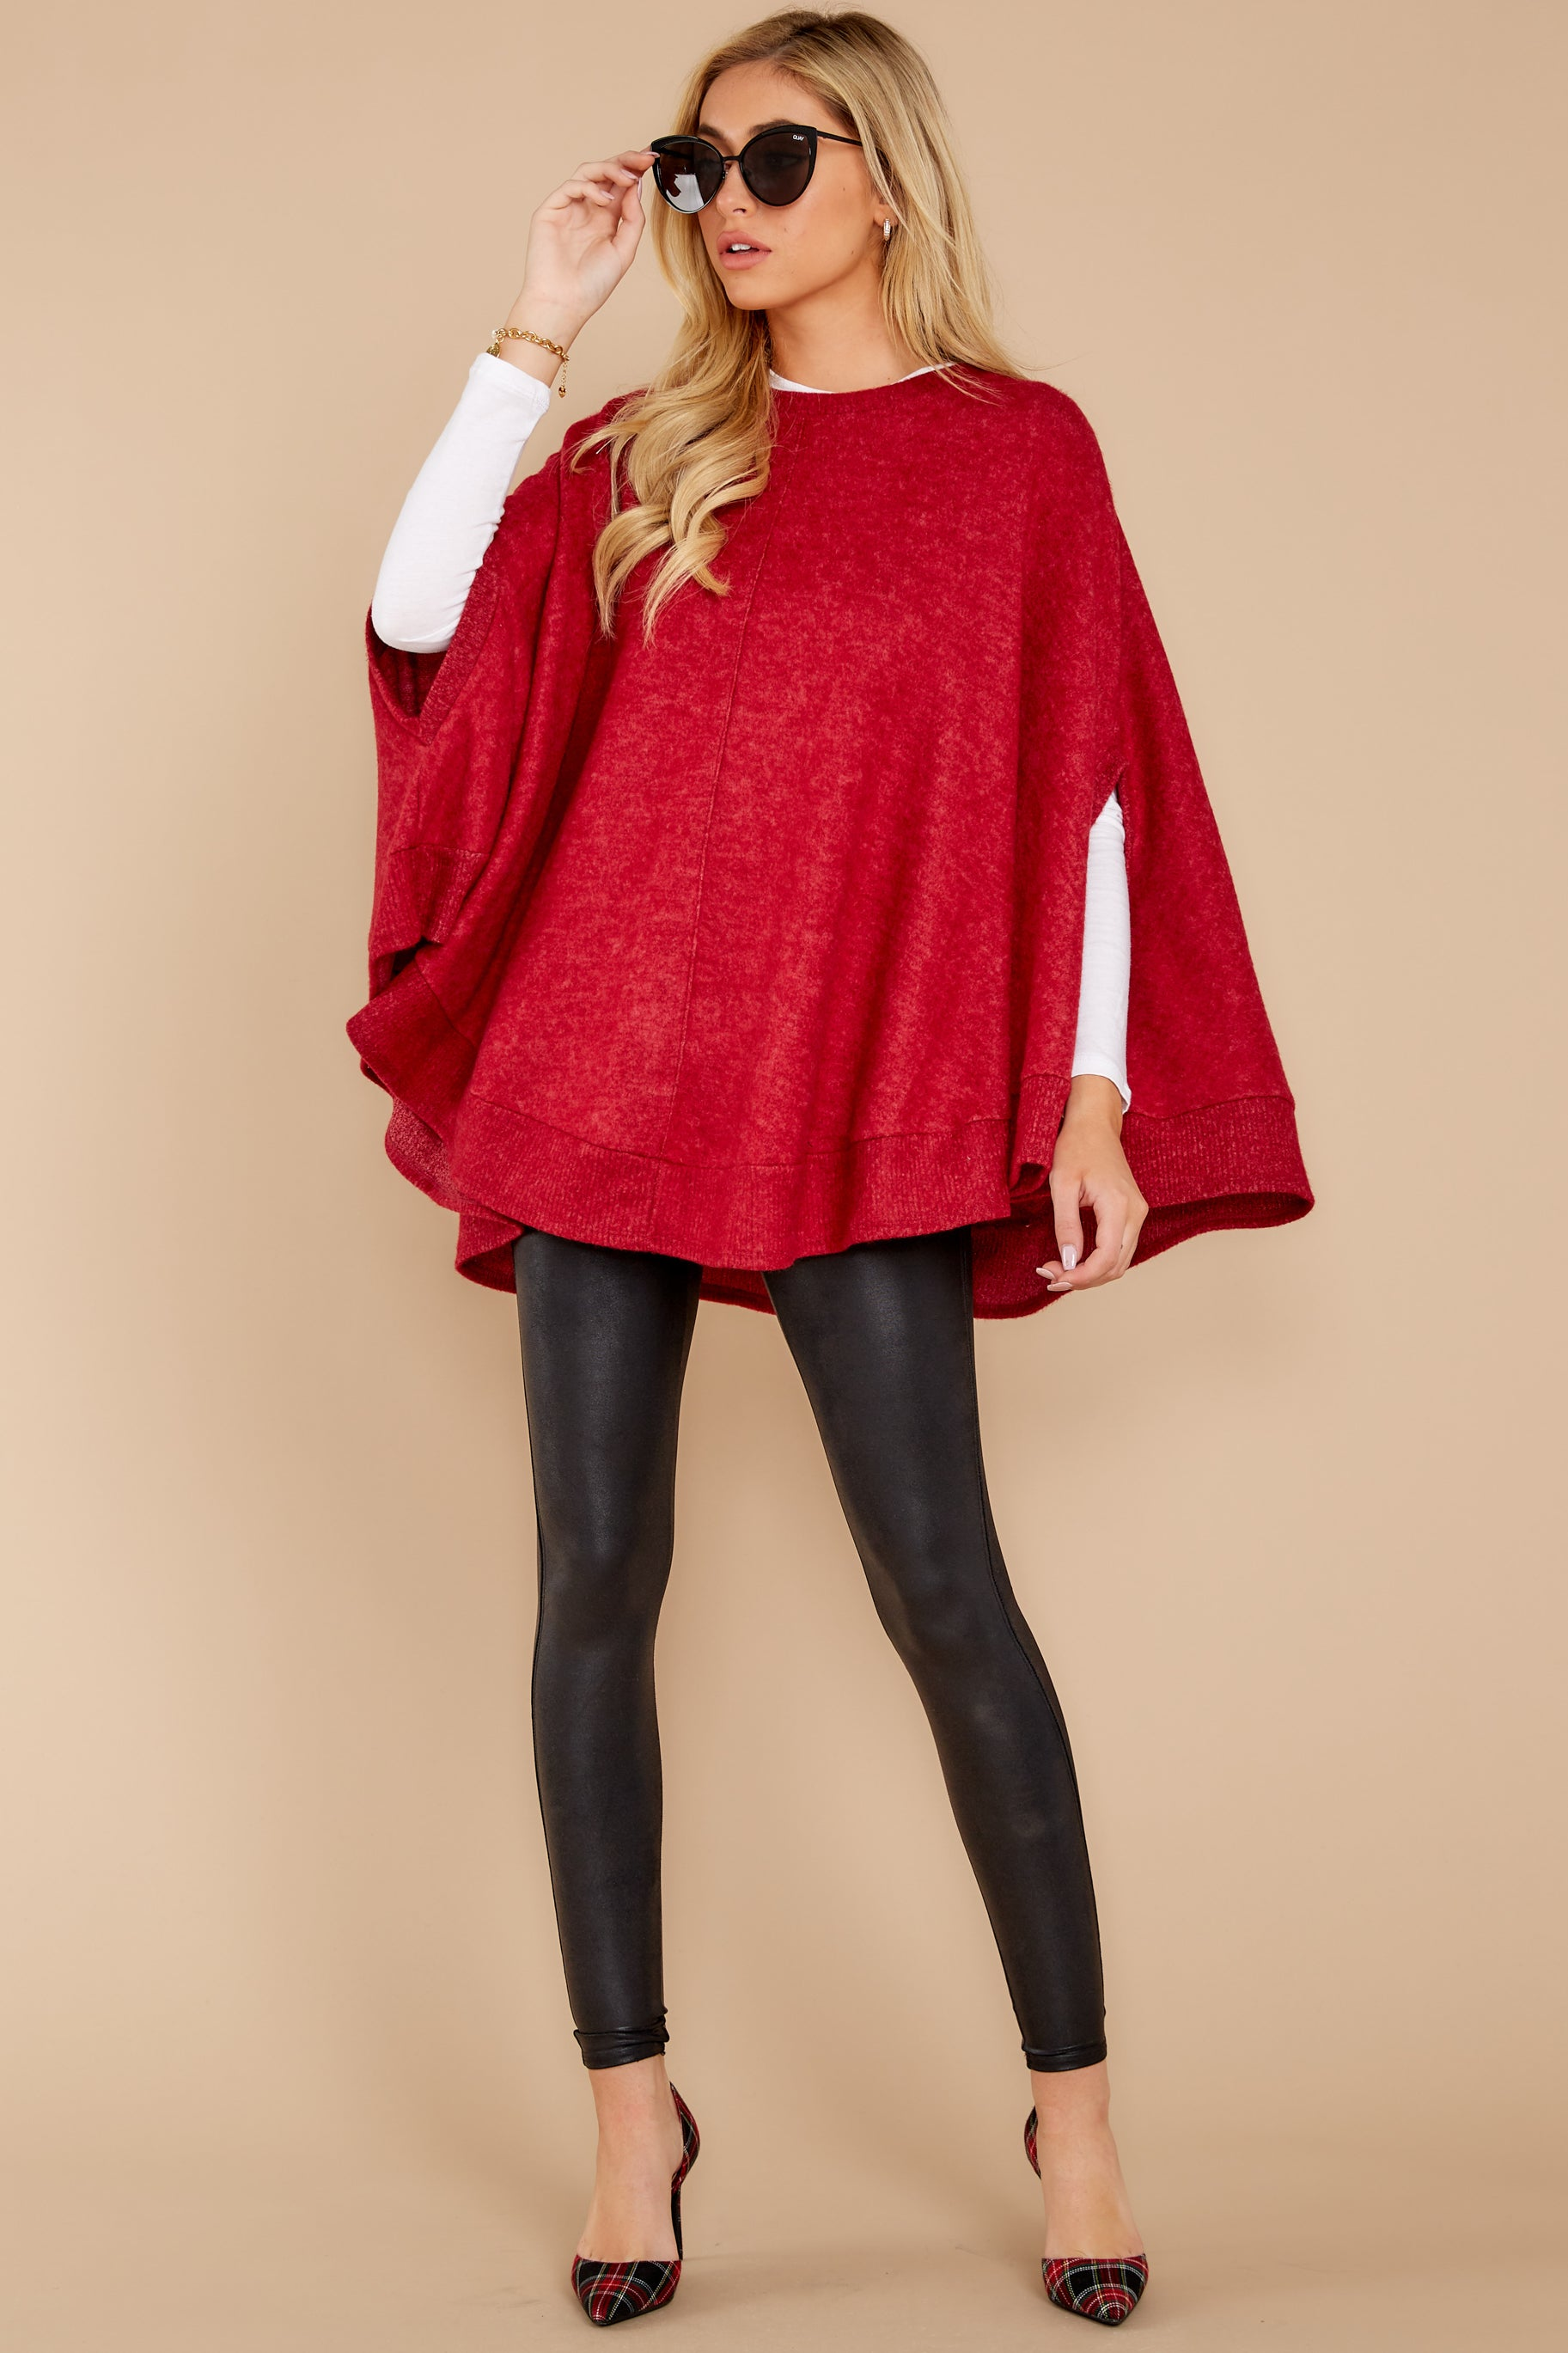 Make Your Mark Dark Red Poncho Top